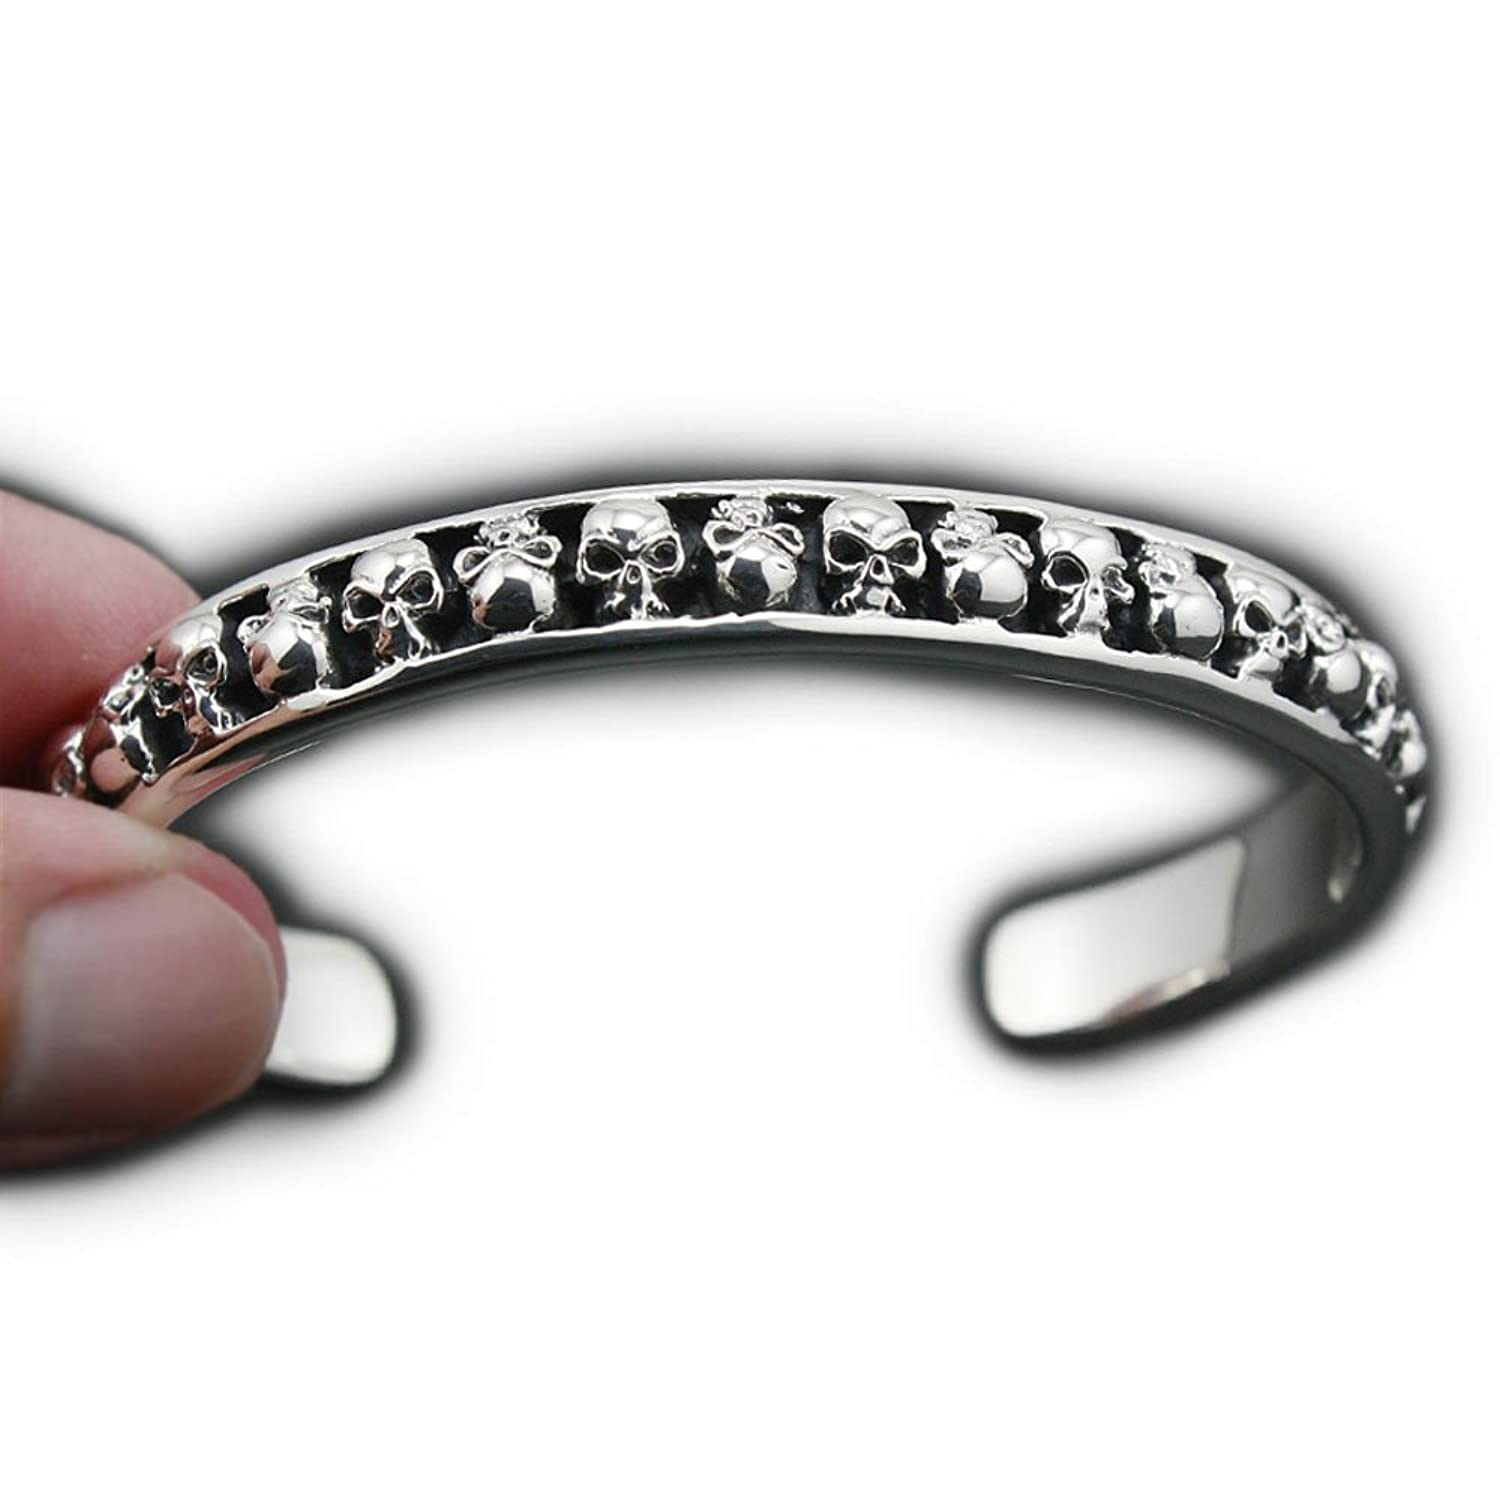 Deluxe Adult Costumes - Men's high-quality sterling silver skulls bangle adjustable pirate bracelet